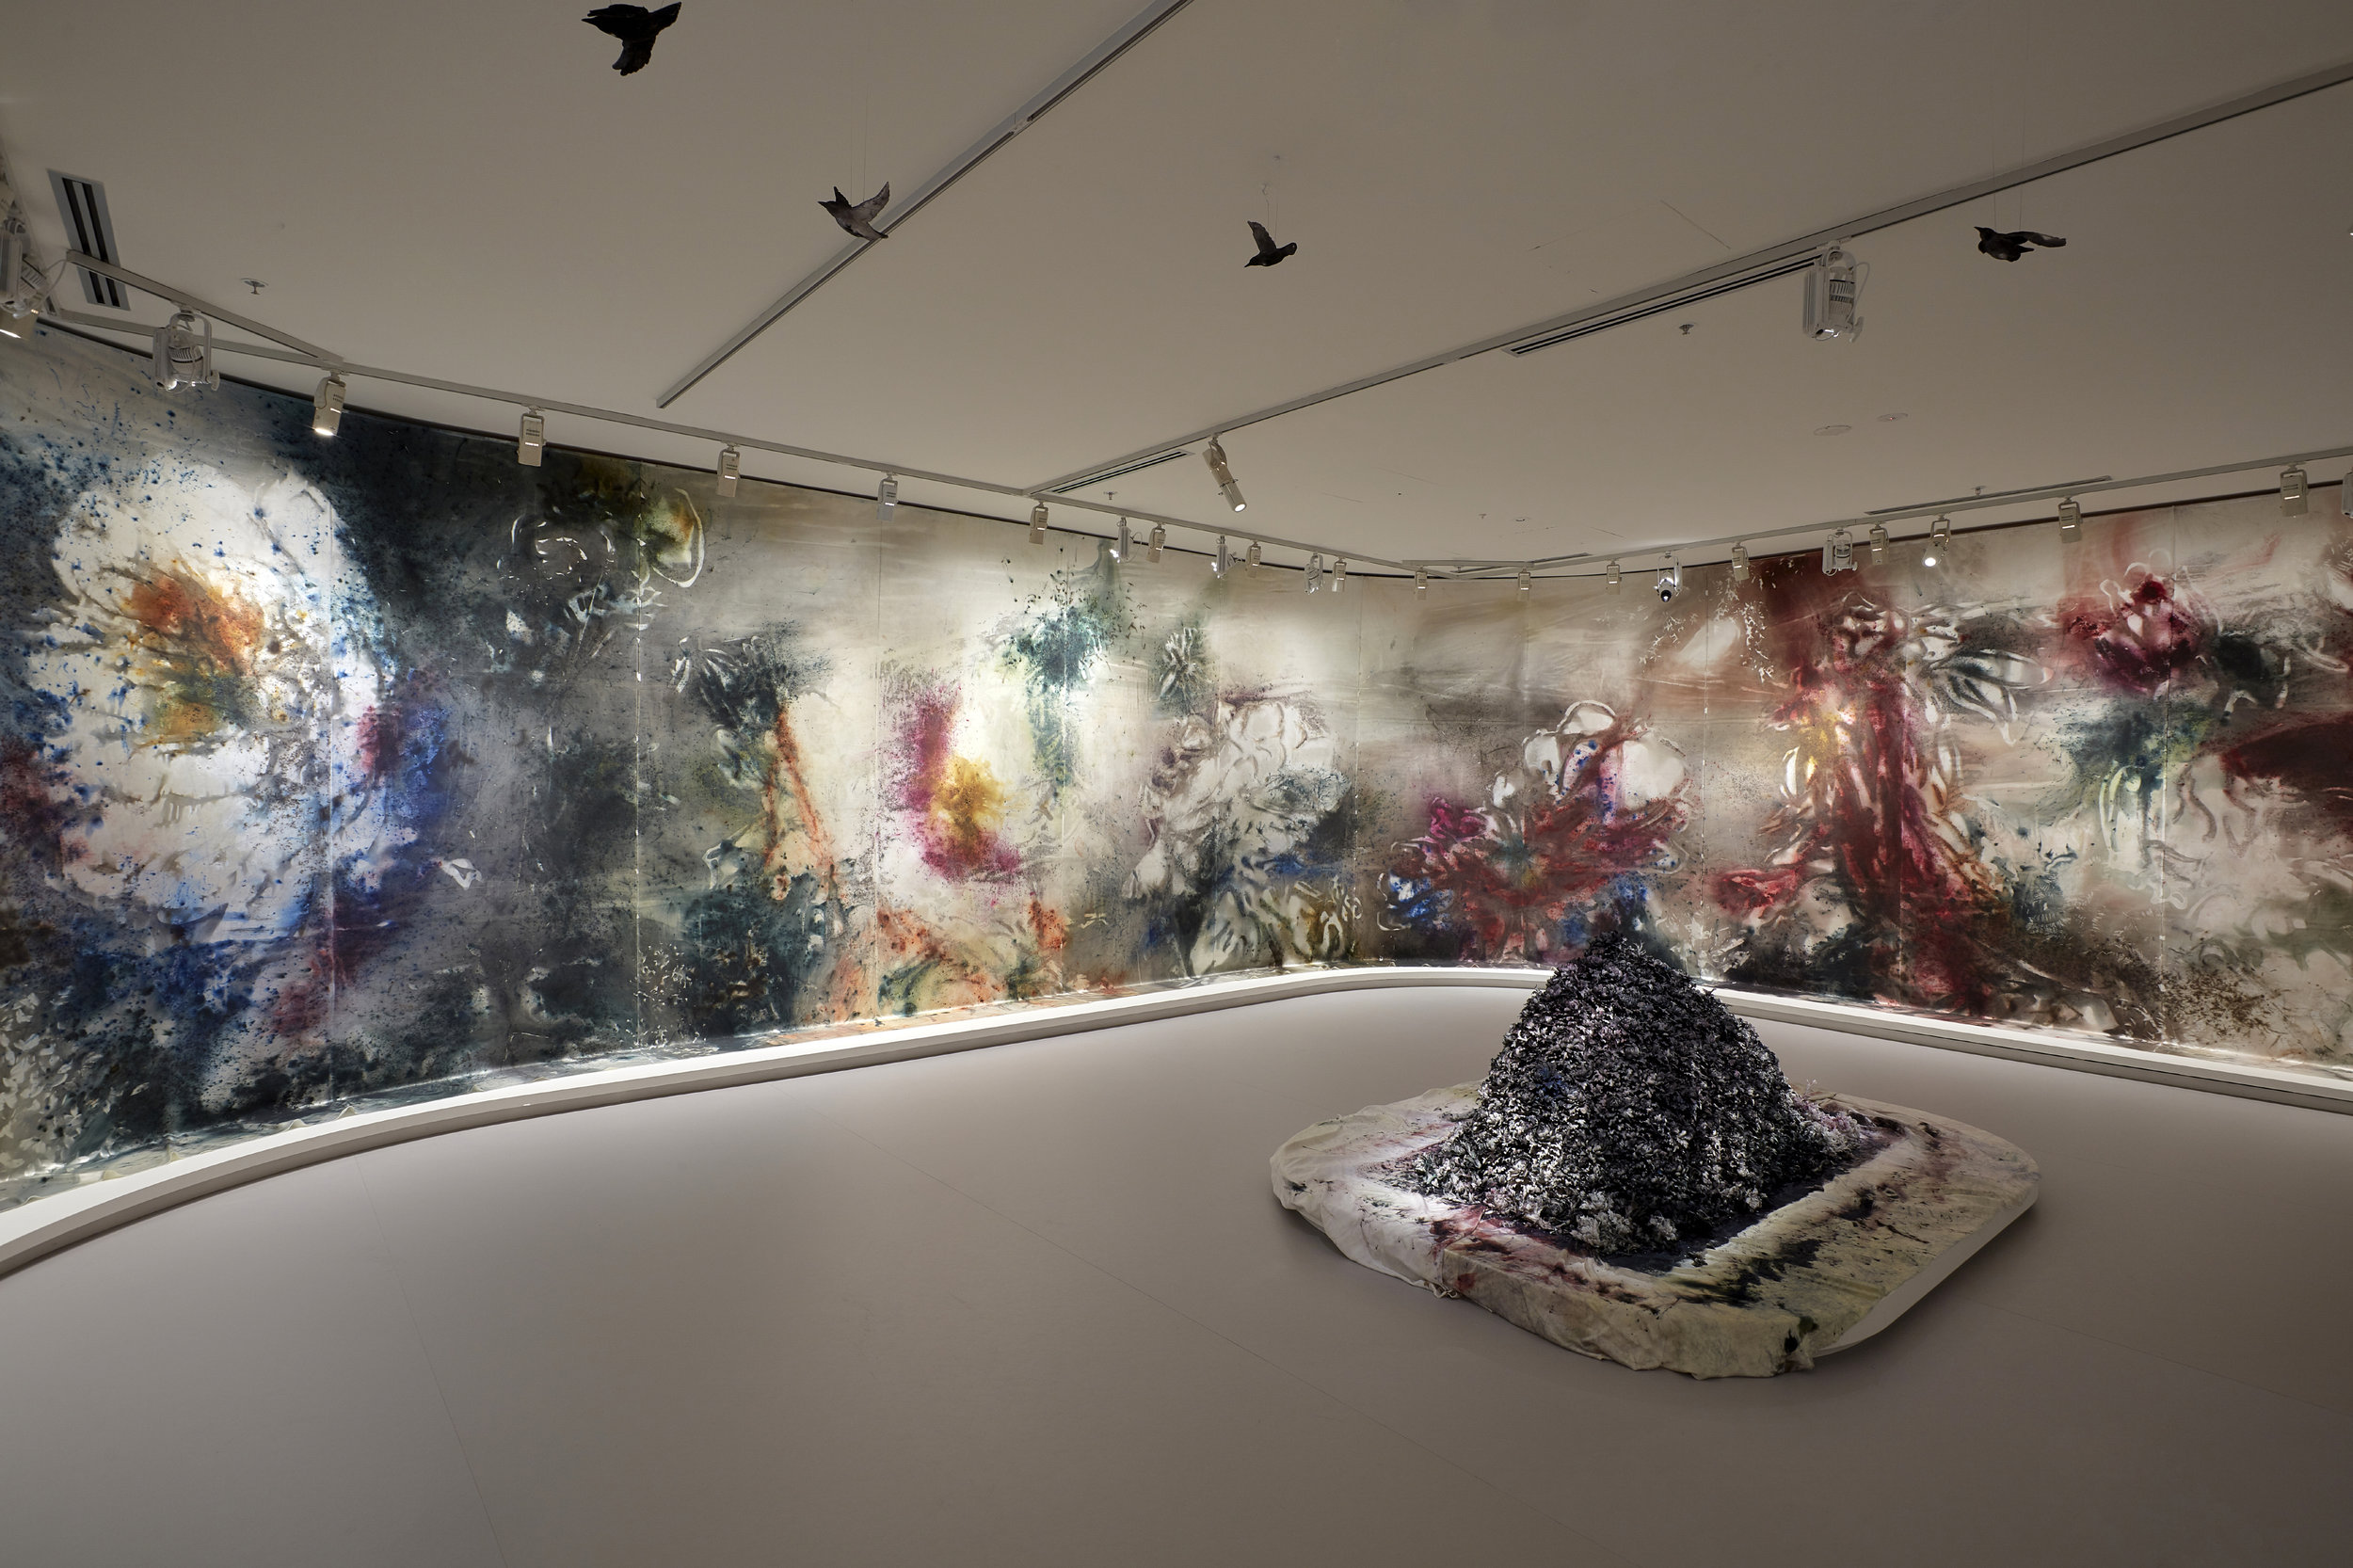 Cai Guo-Qiang: The Transient Landscape , exhibition installation view, NGV International, Melbourne, 2019; © Cai Guo-Qiang; photo: Sean Fennessy